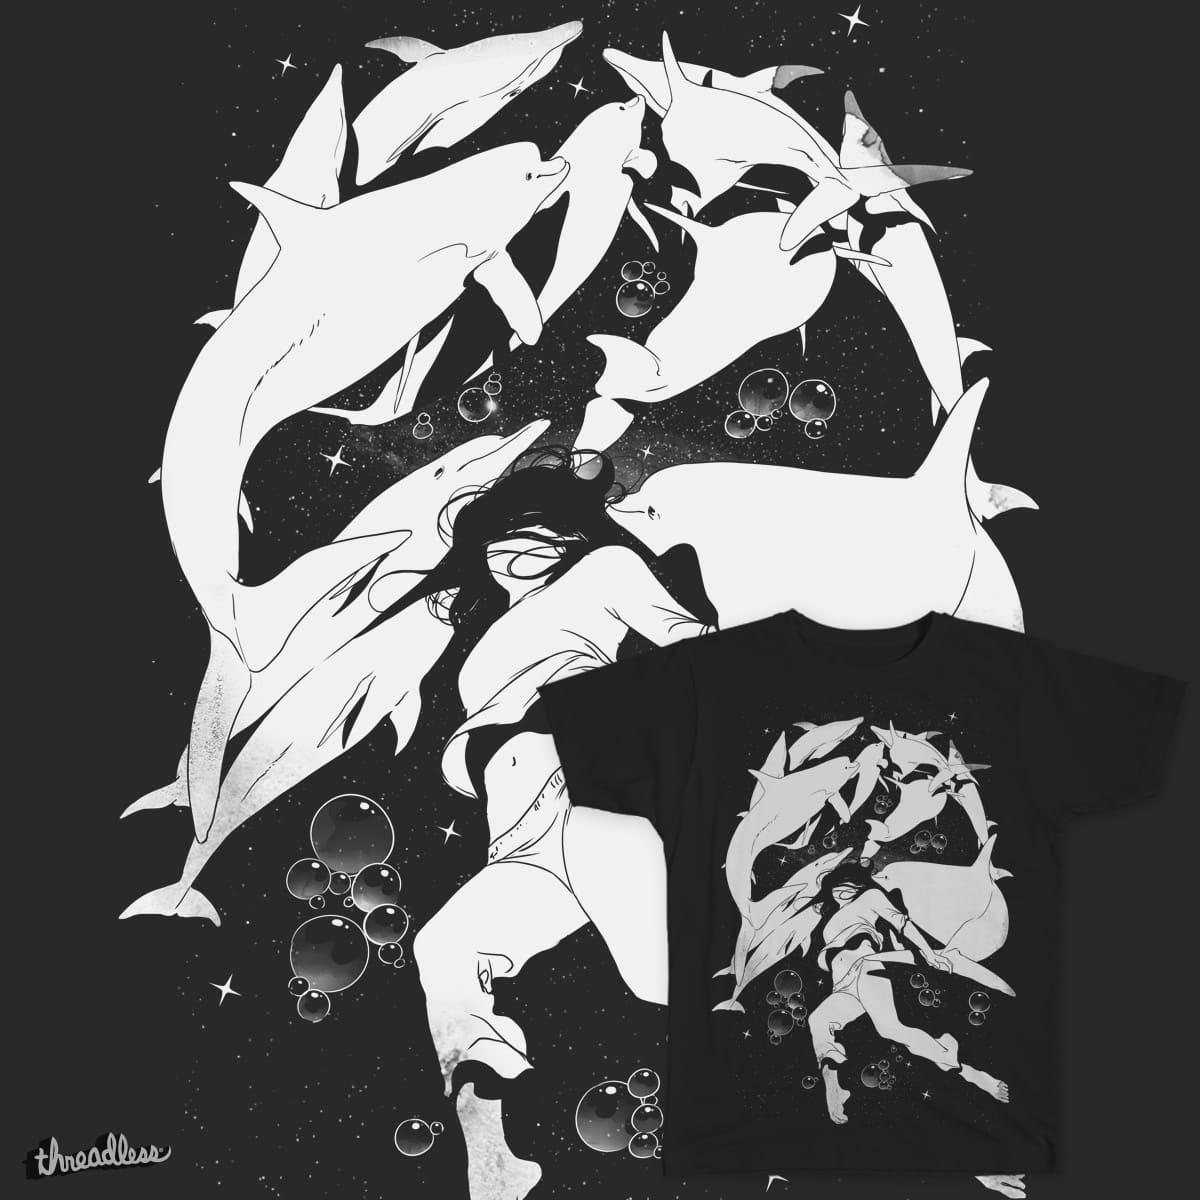 Wet dreams by SPYKEEE on Threadless